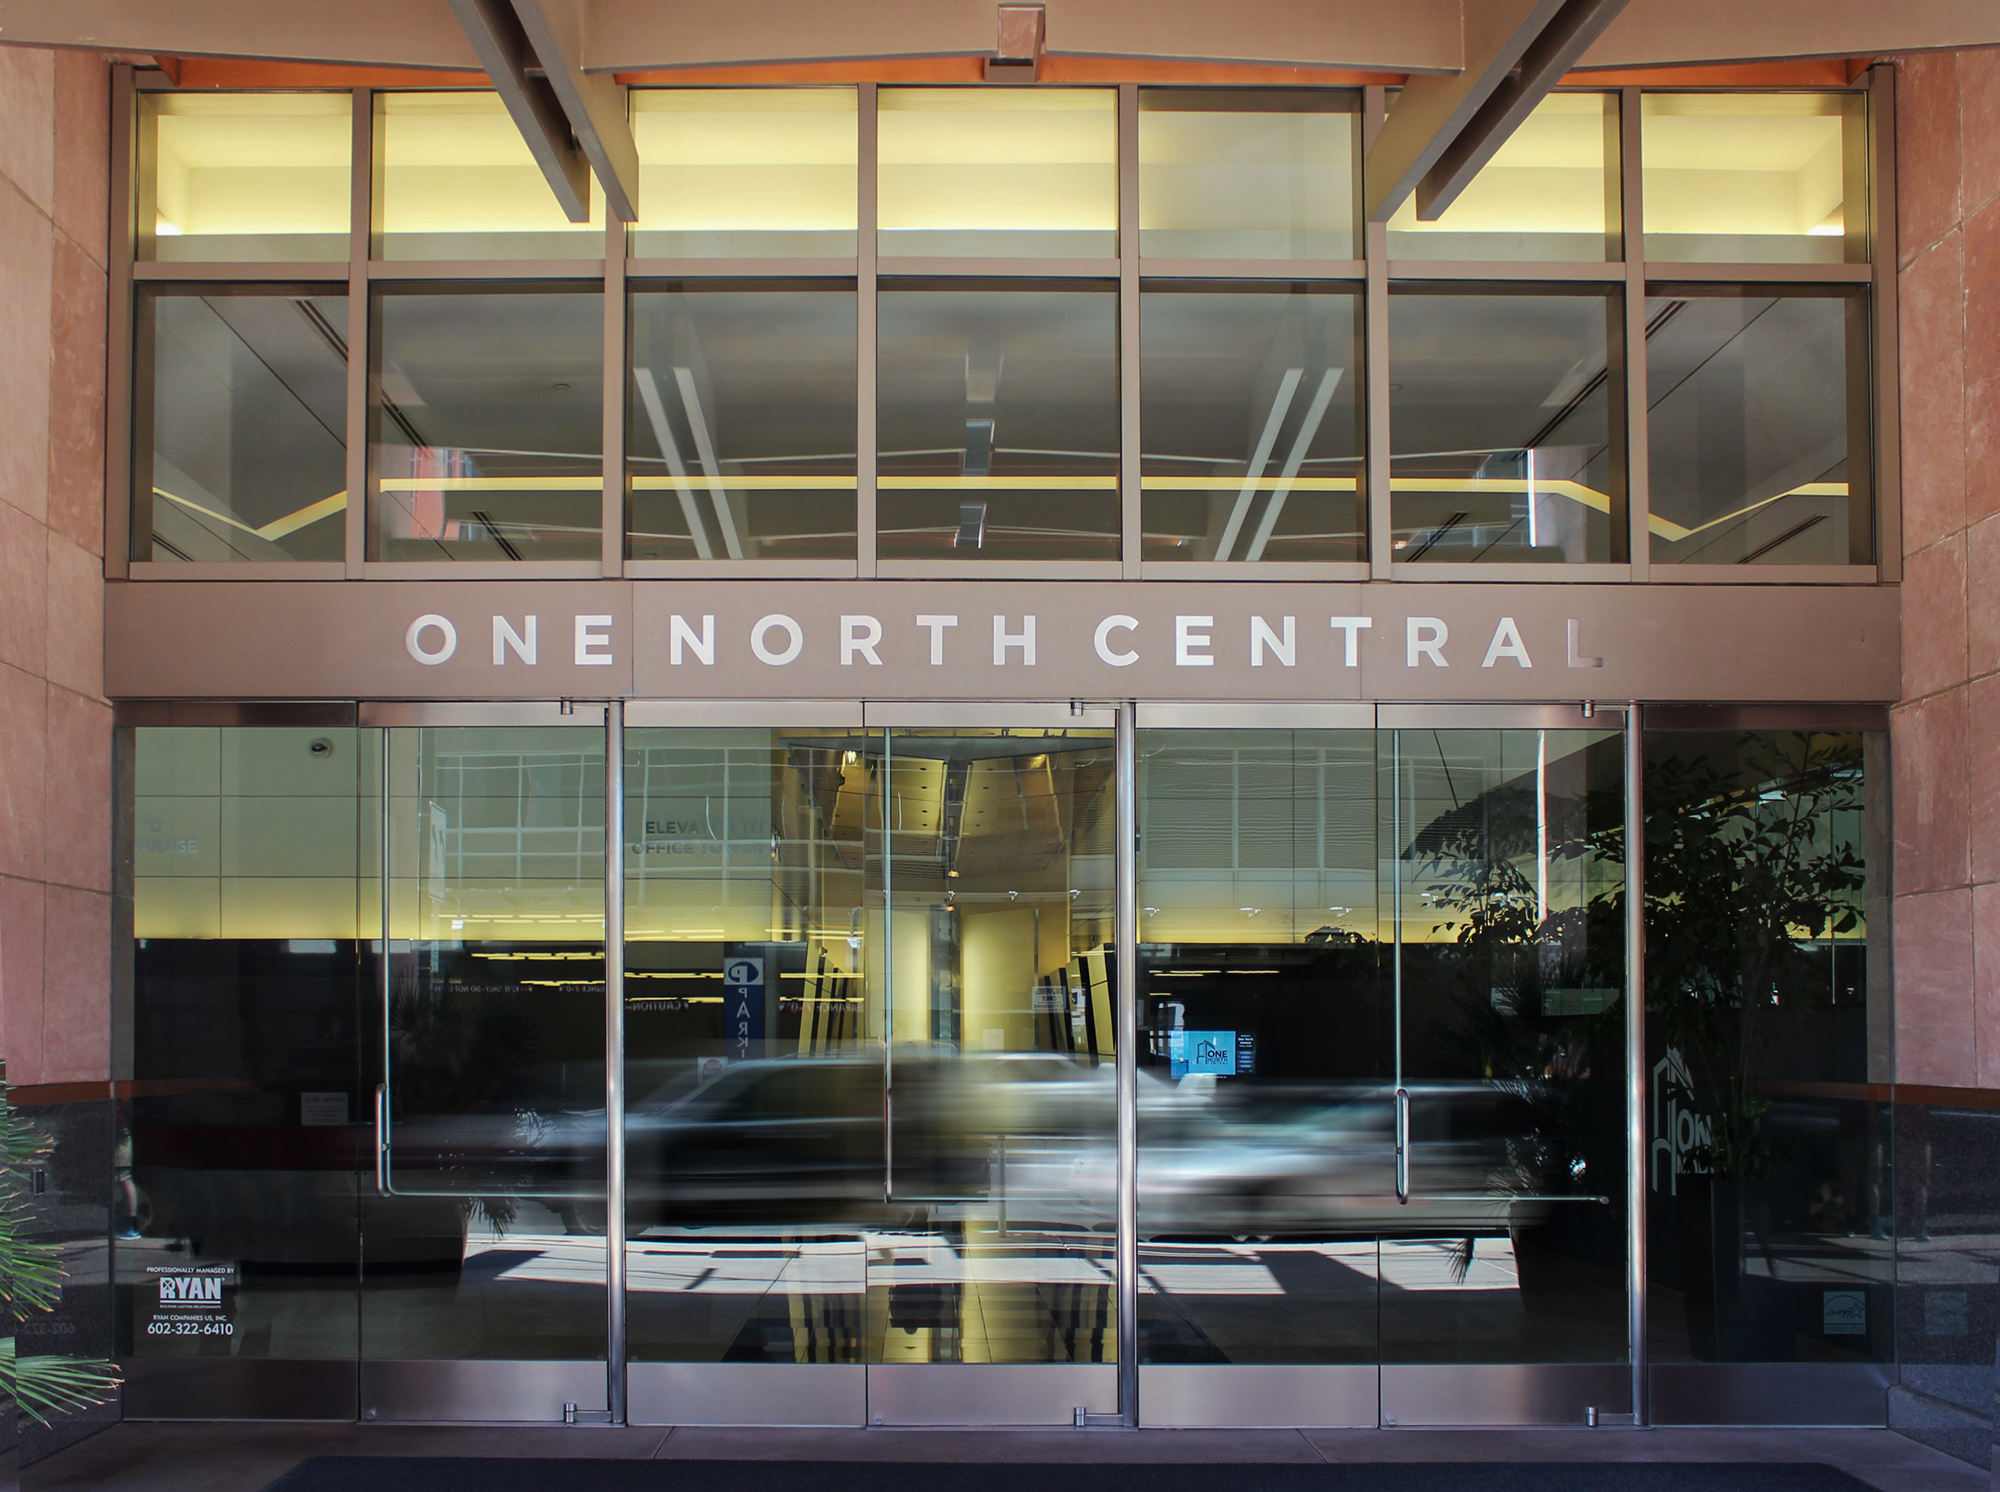 The main entrance is marked with reverse pan brushed aluminum letters.